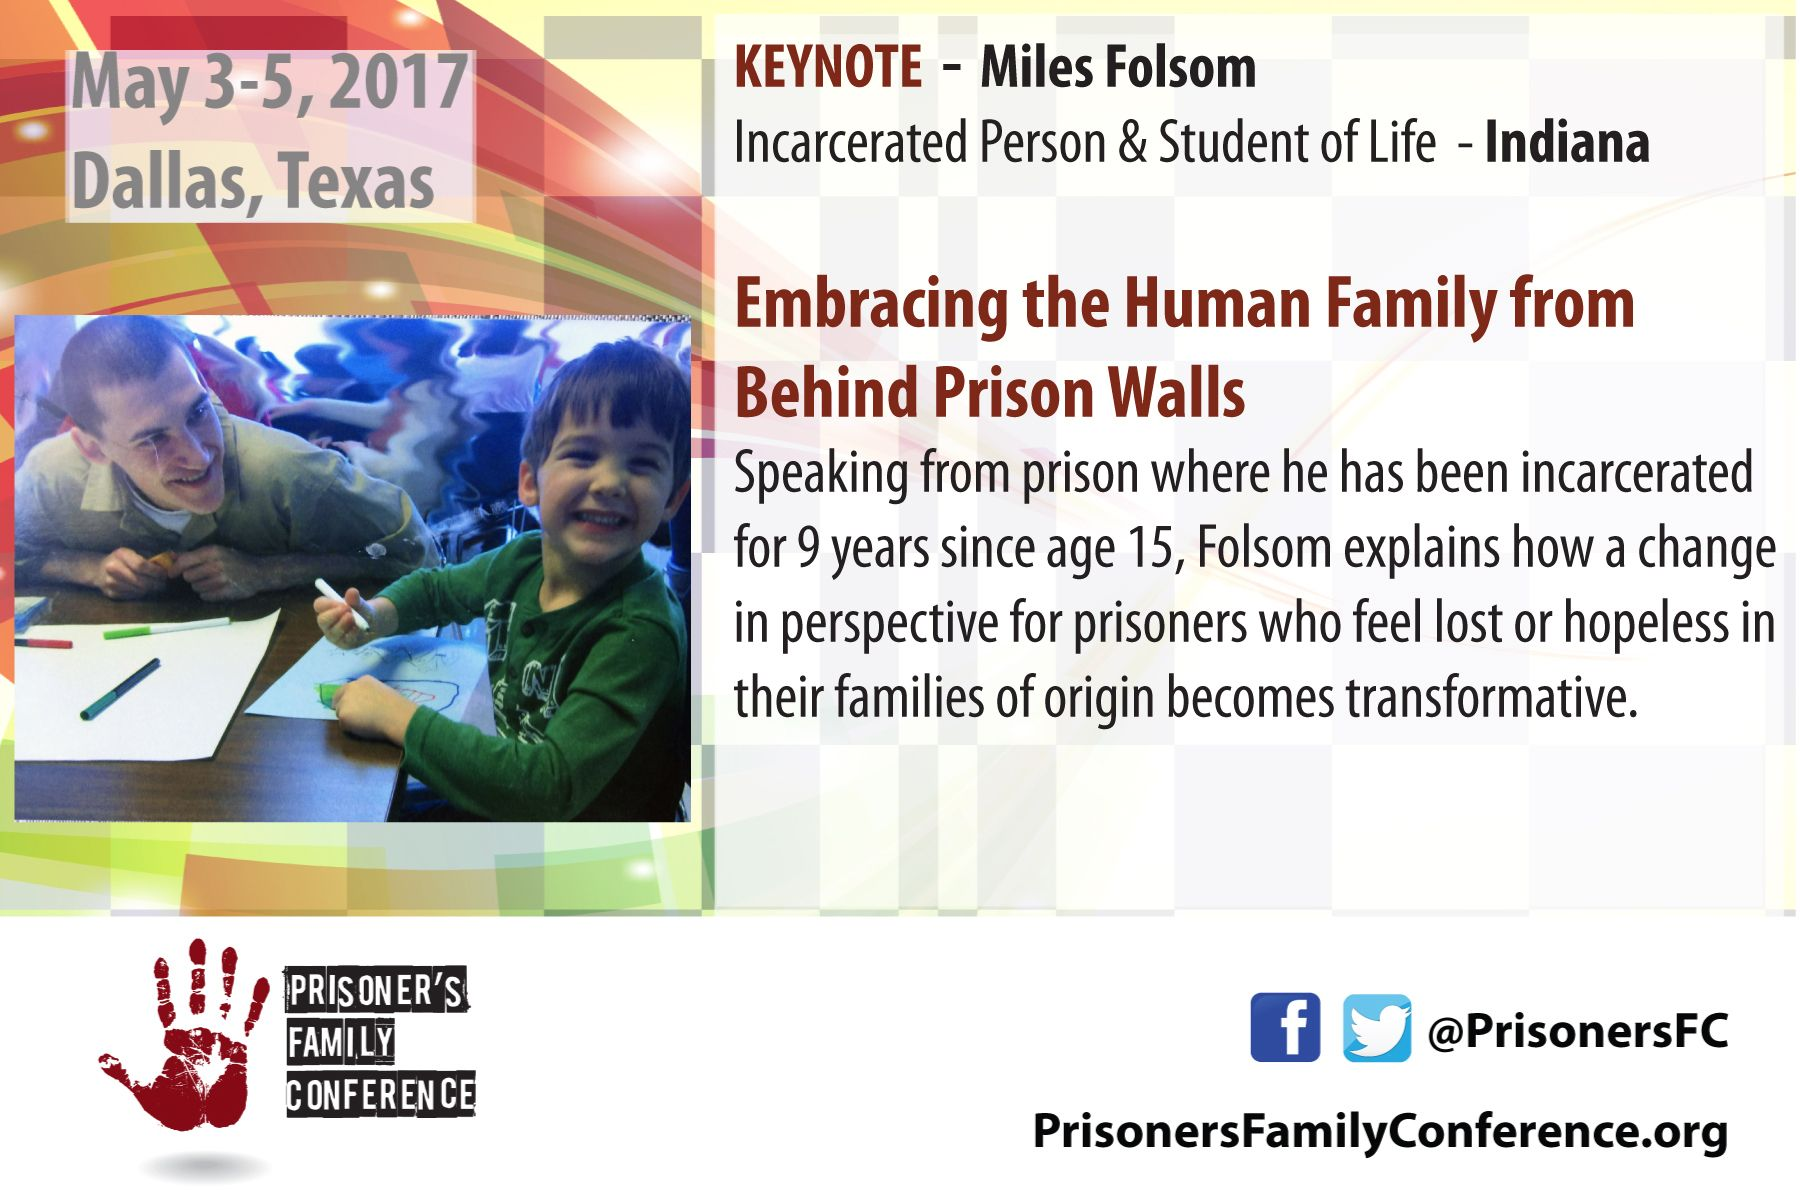 Miles Folsom Incarcerated Person & Student of Life